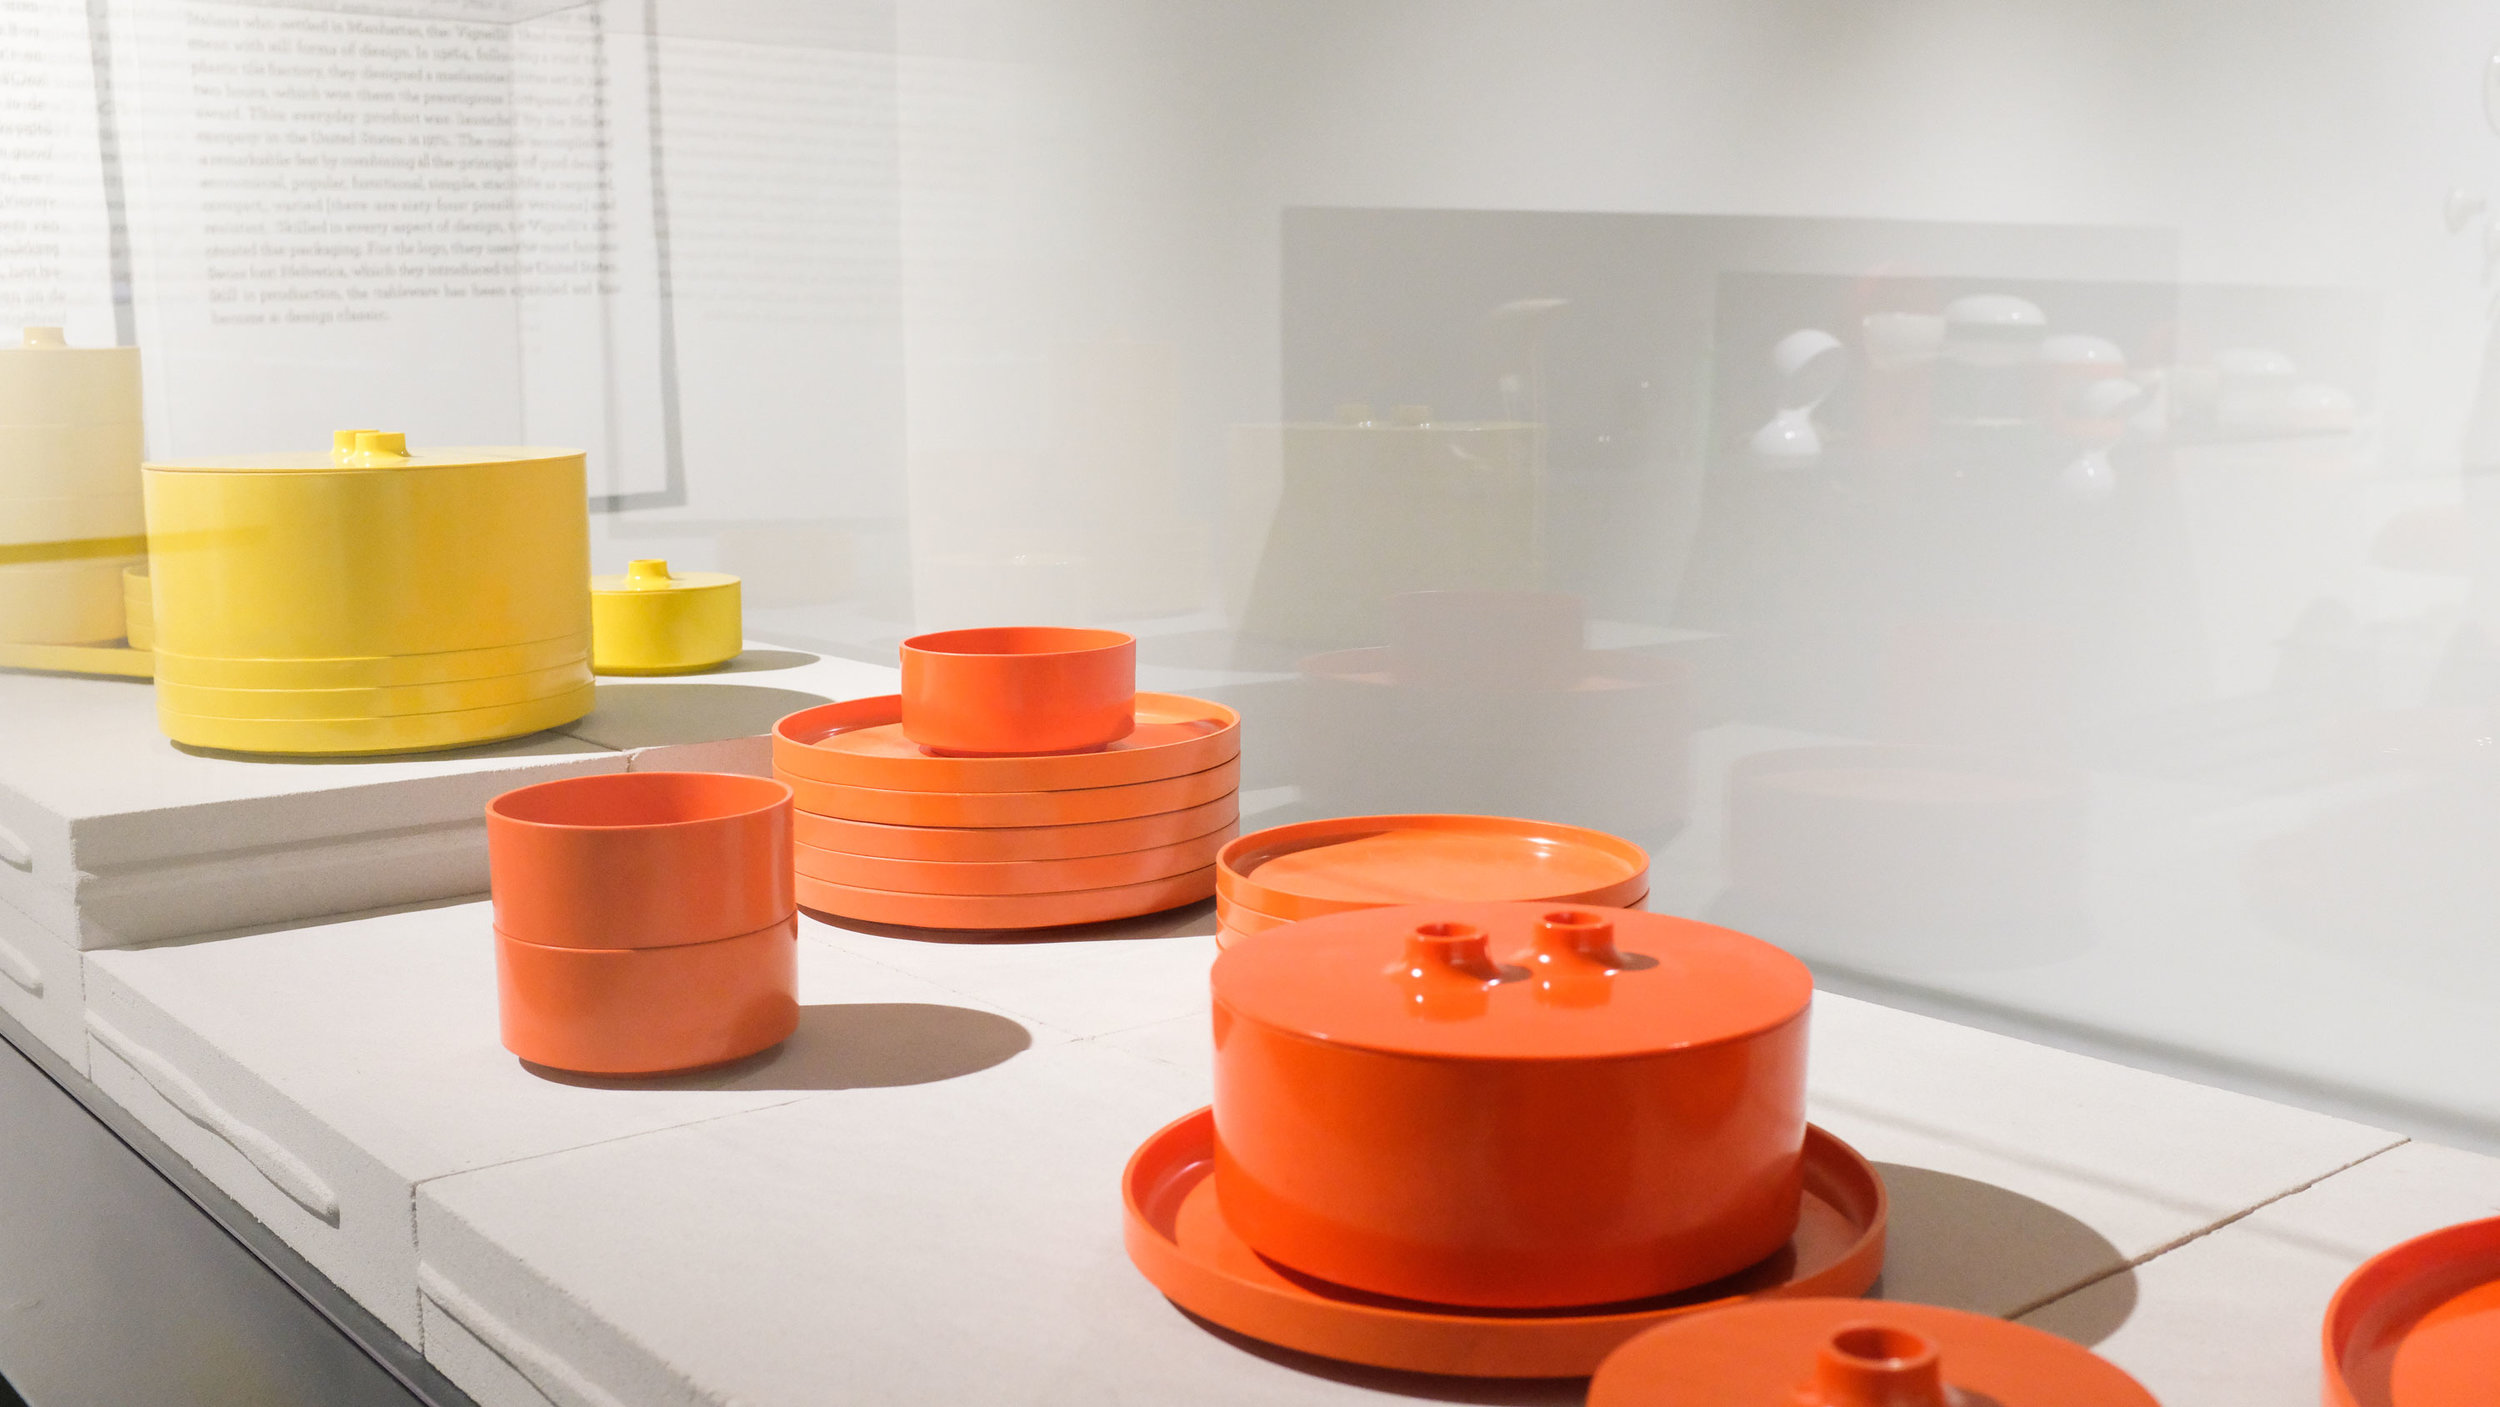 Got to see the Vignelli's dinnerware pieces!